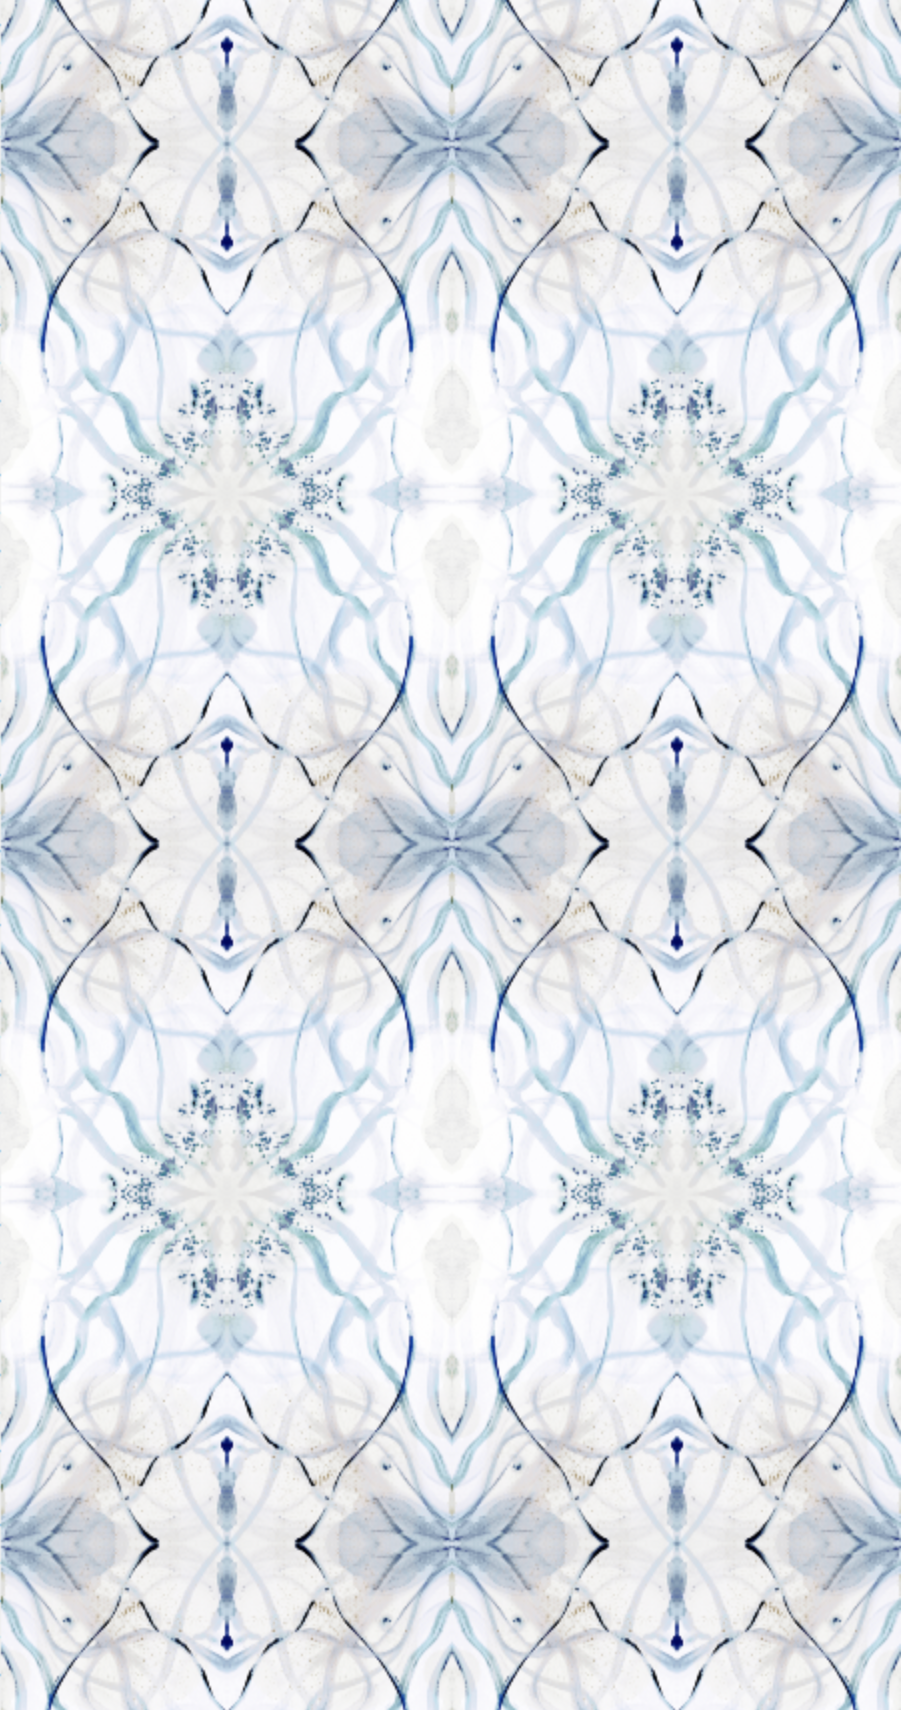 blue ivory wallpaper, blue and ivory wallpaper, navy and cream wallpaper, navy and